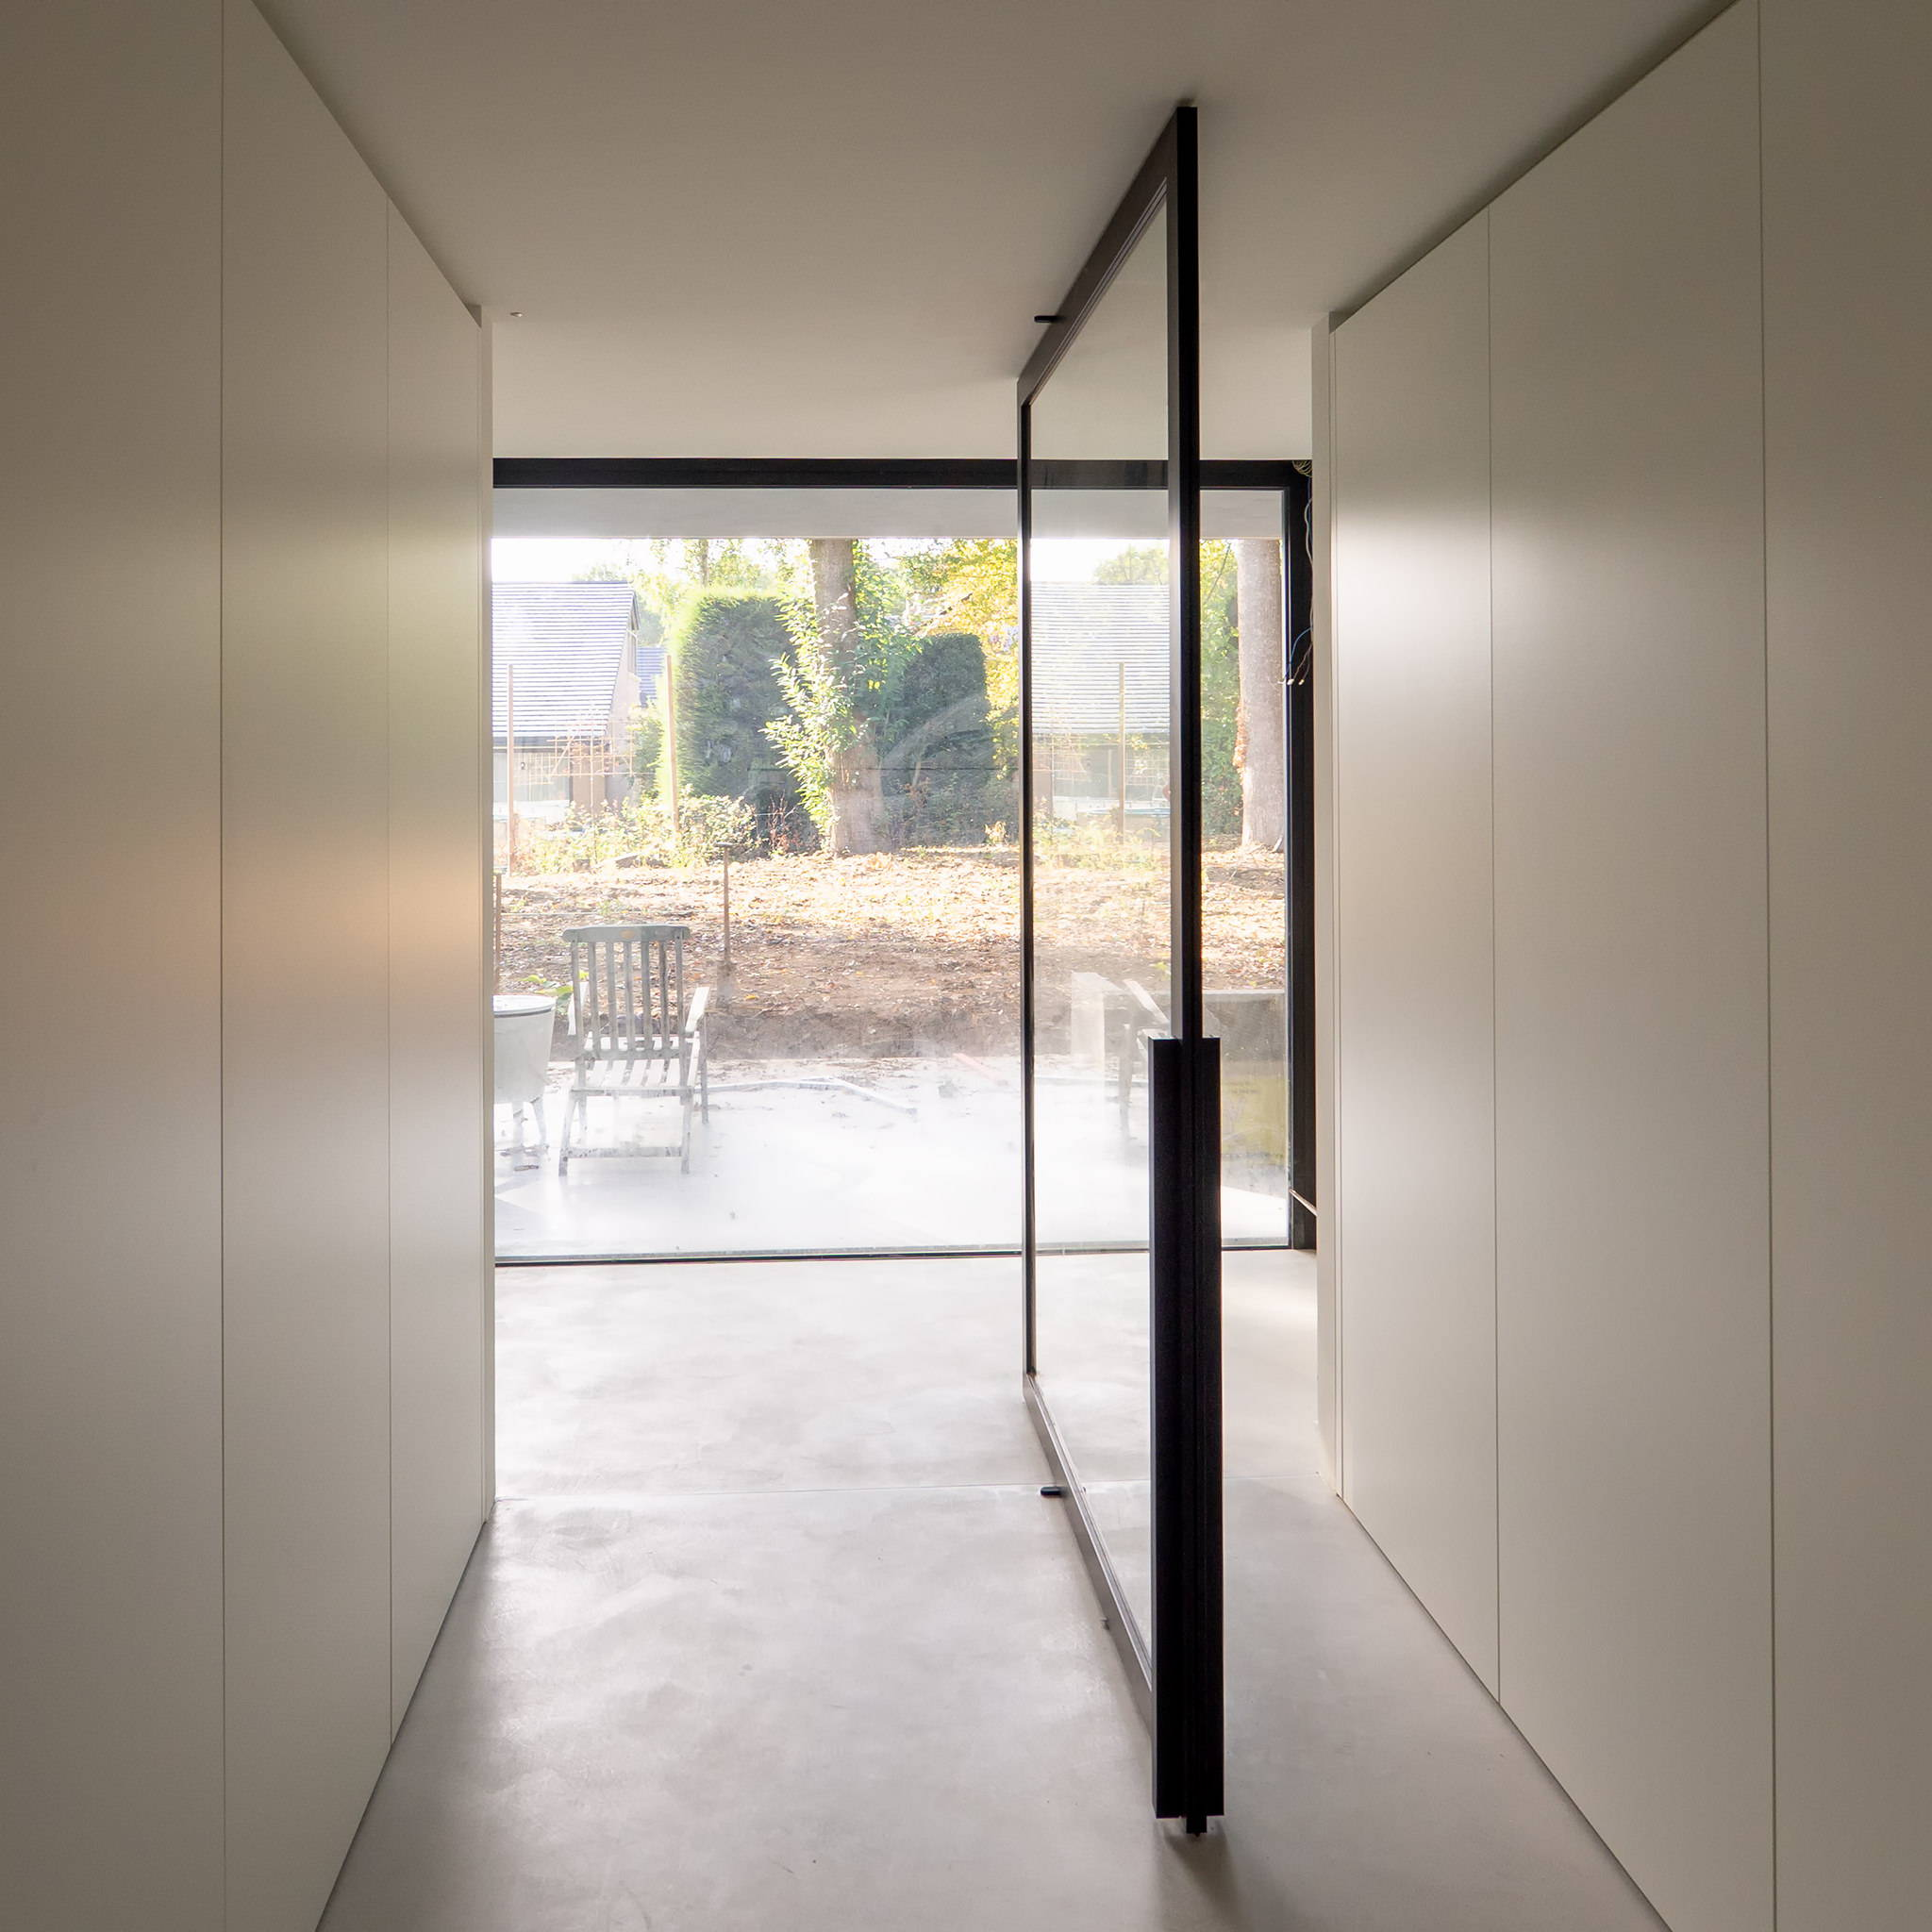 Crittall style glass pivoting door